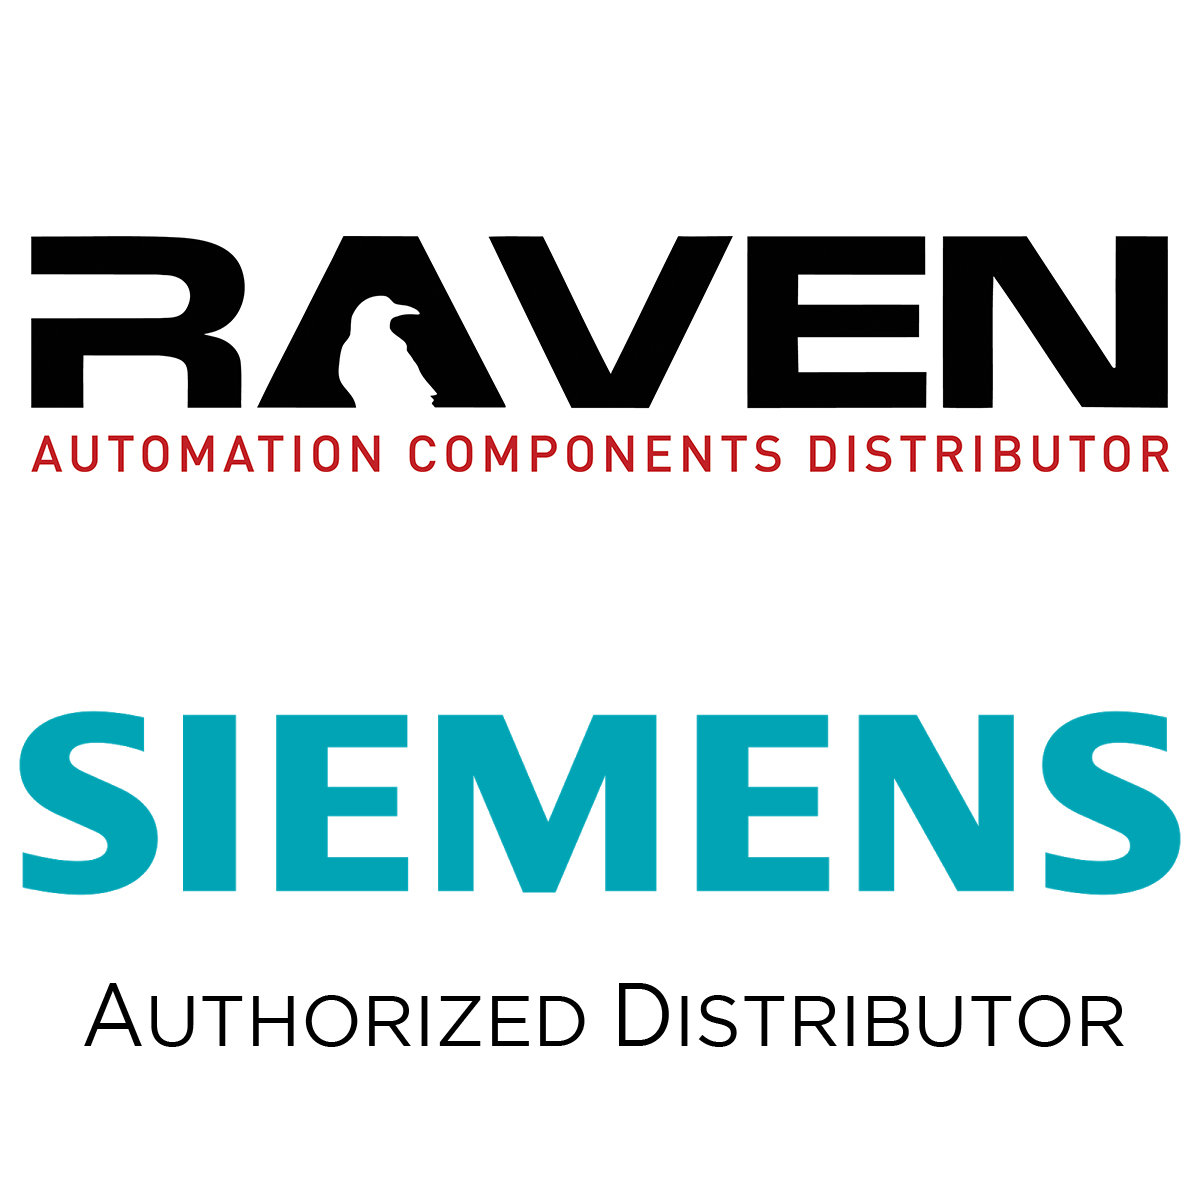 RAVEN-Siemens-authorized-distributor